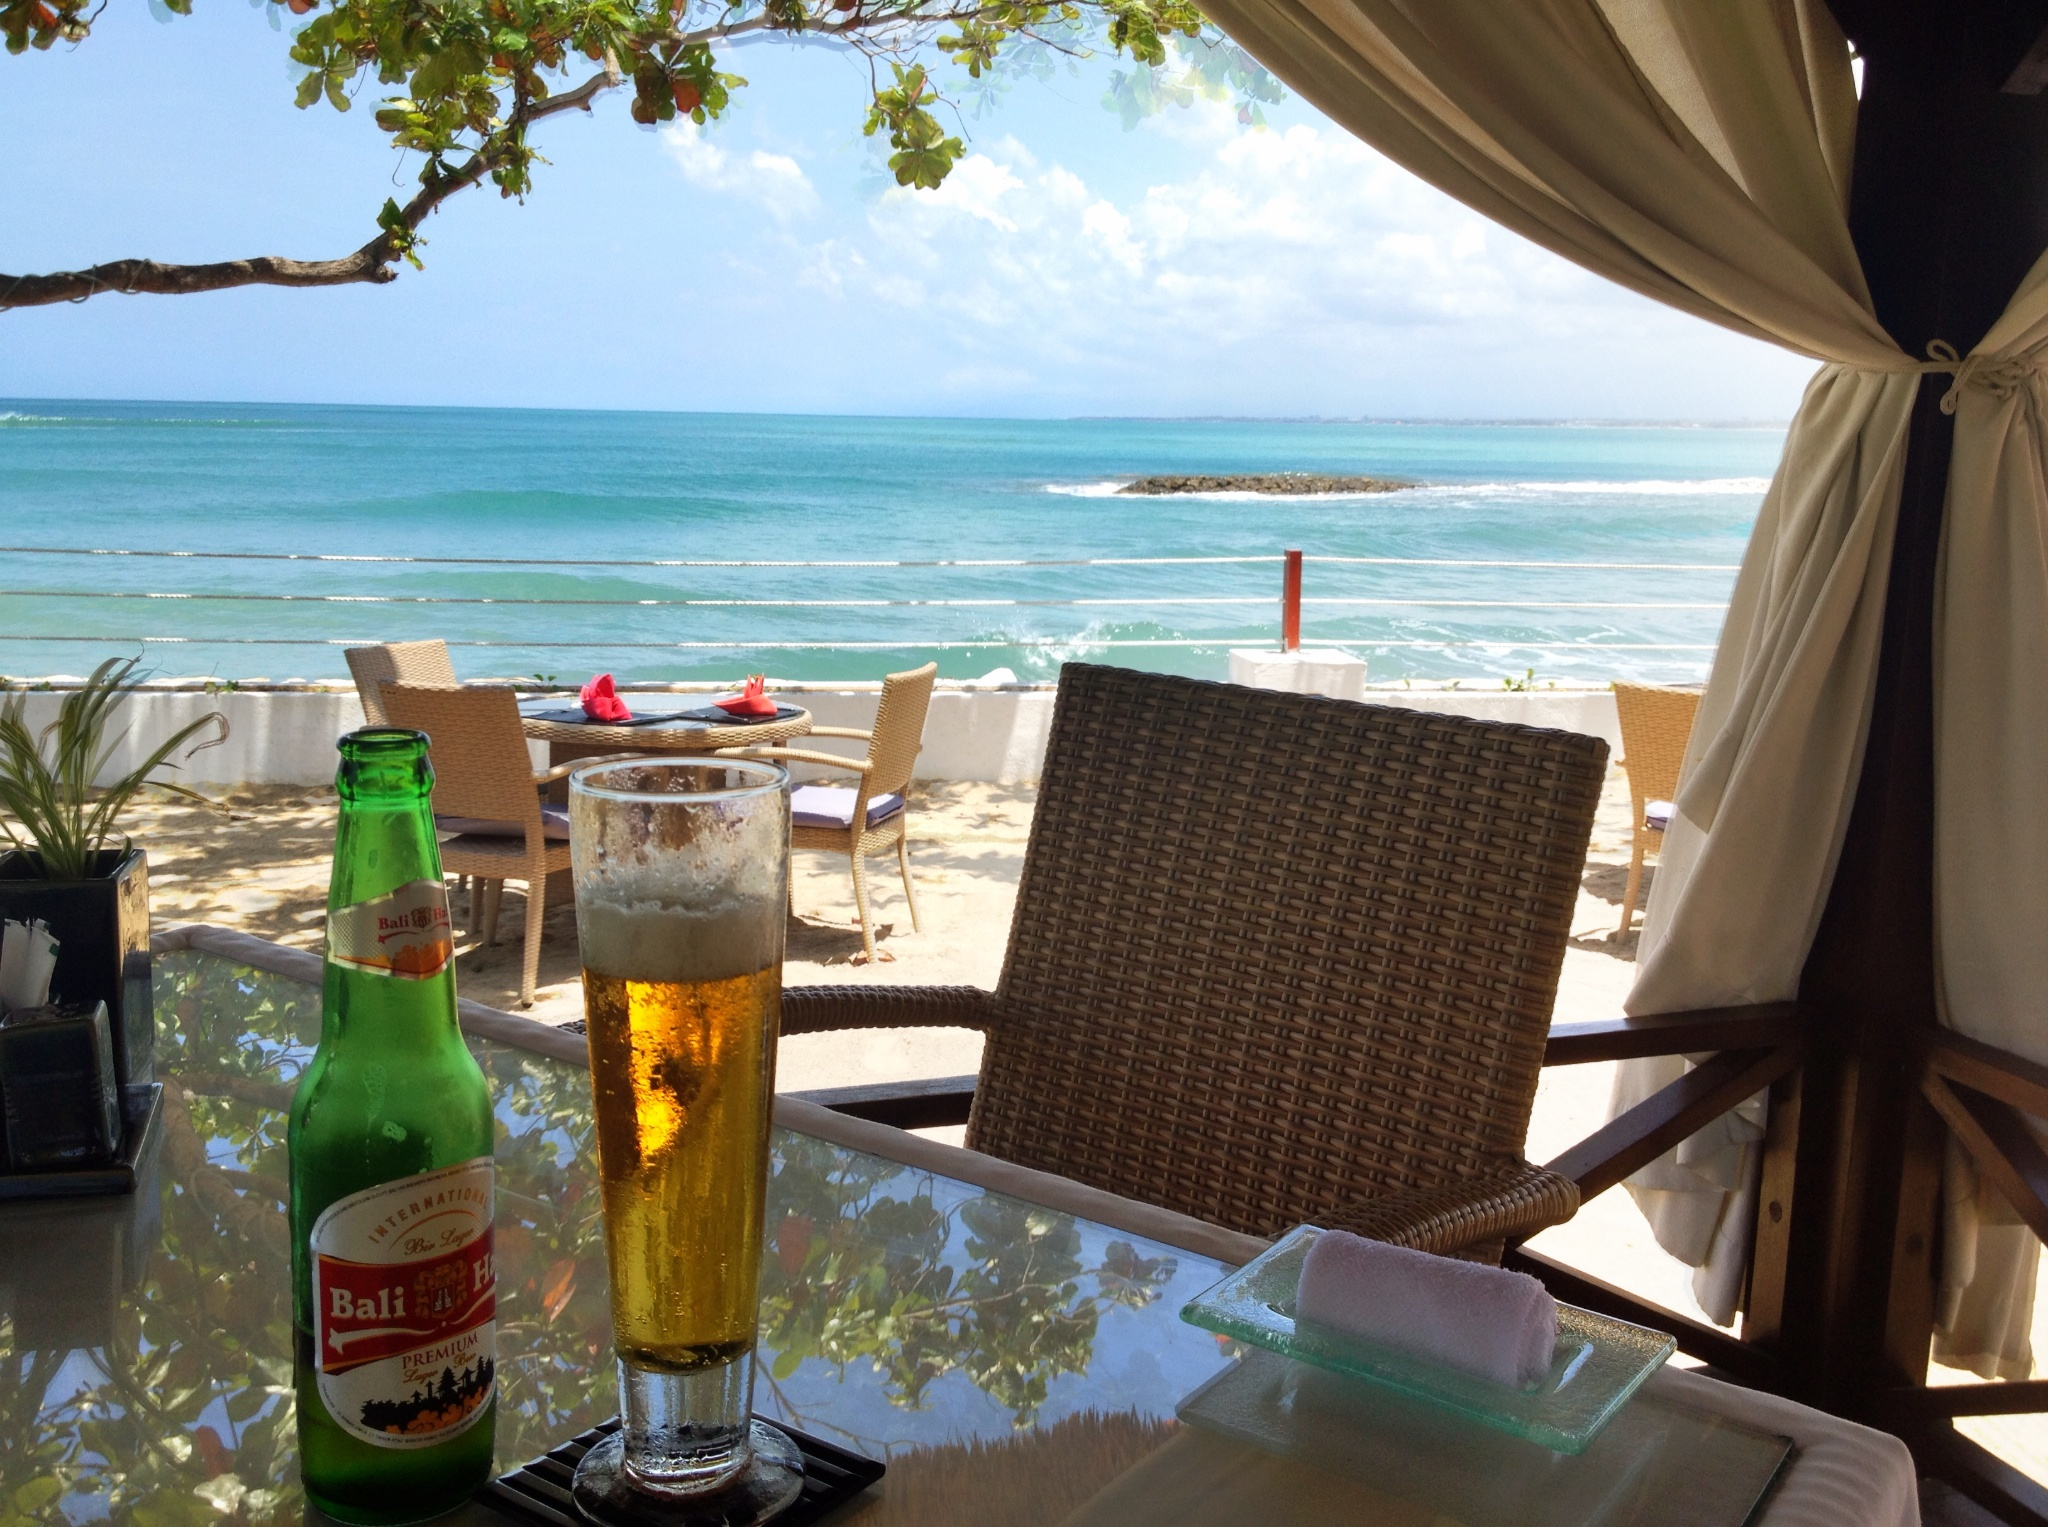 Lunch was pretty good - sushi and noodles on the sand overlooking the ocean. The beer was typical hot weather beer - nothing special.